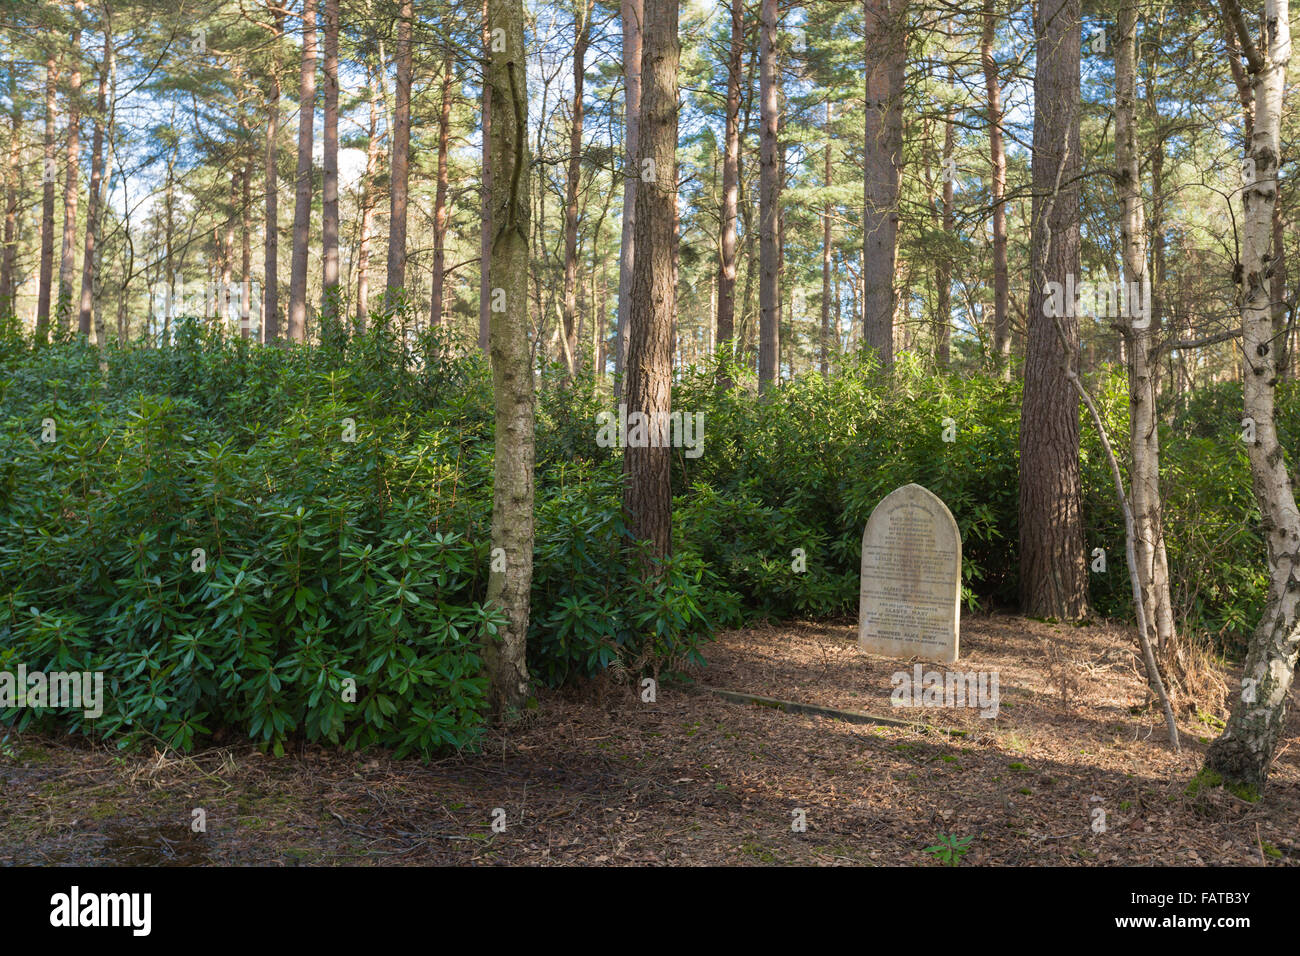 The Graveyard In The Woods